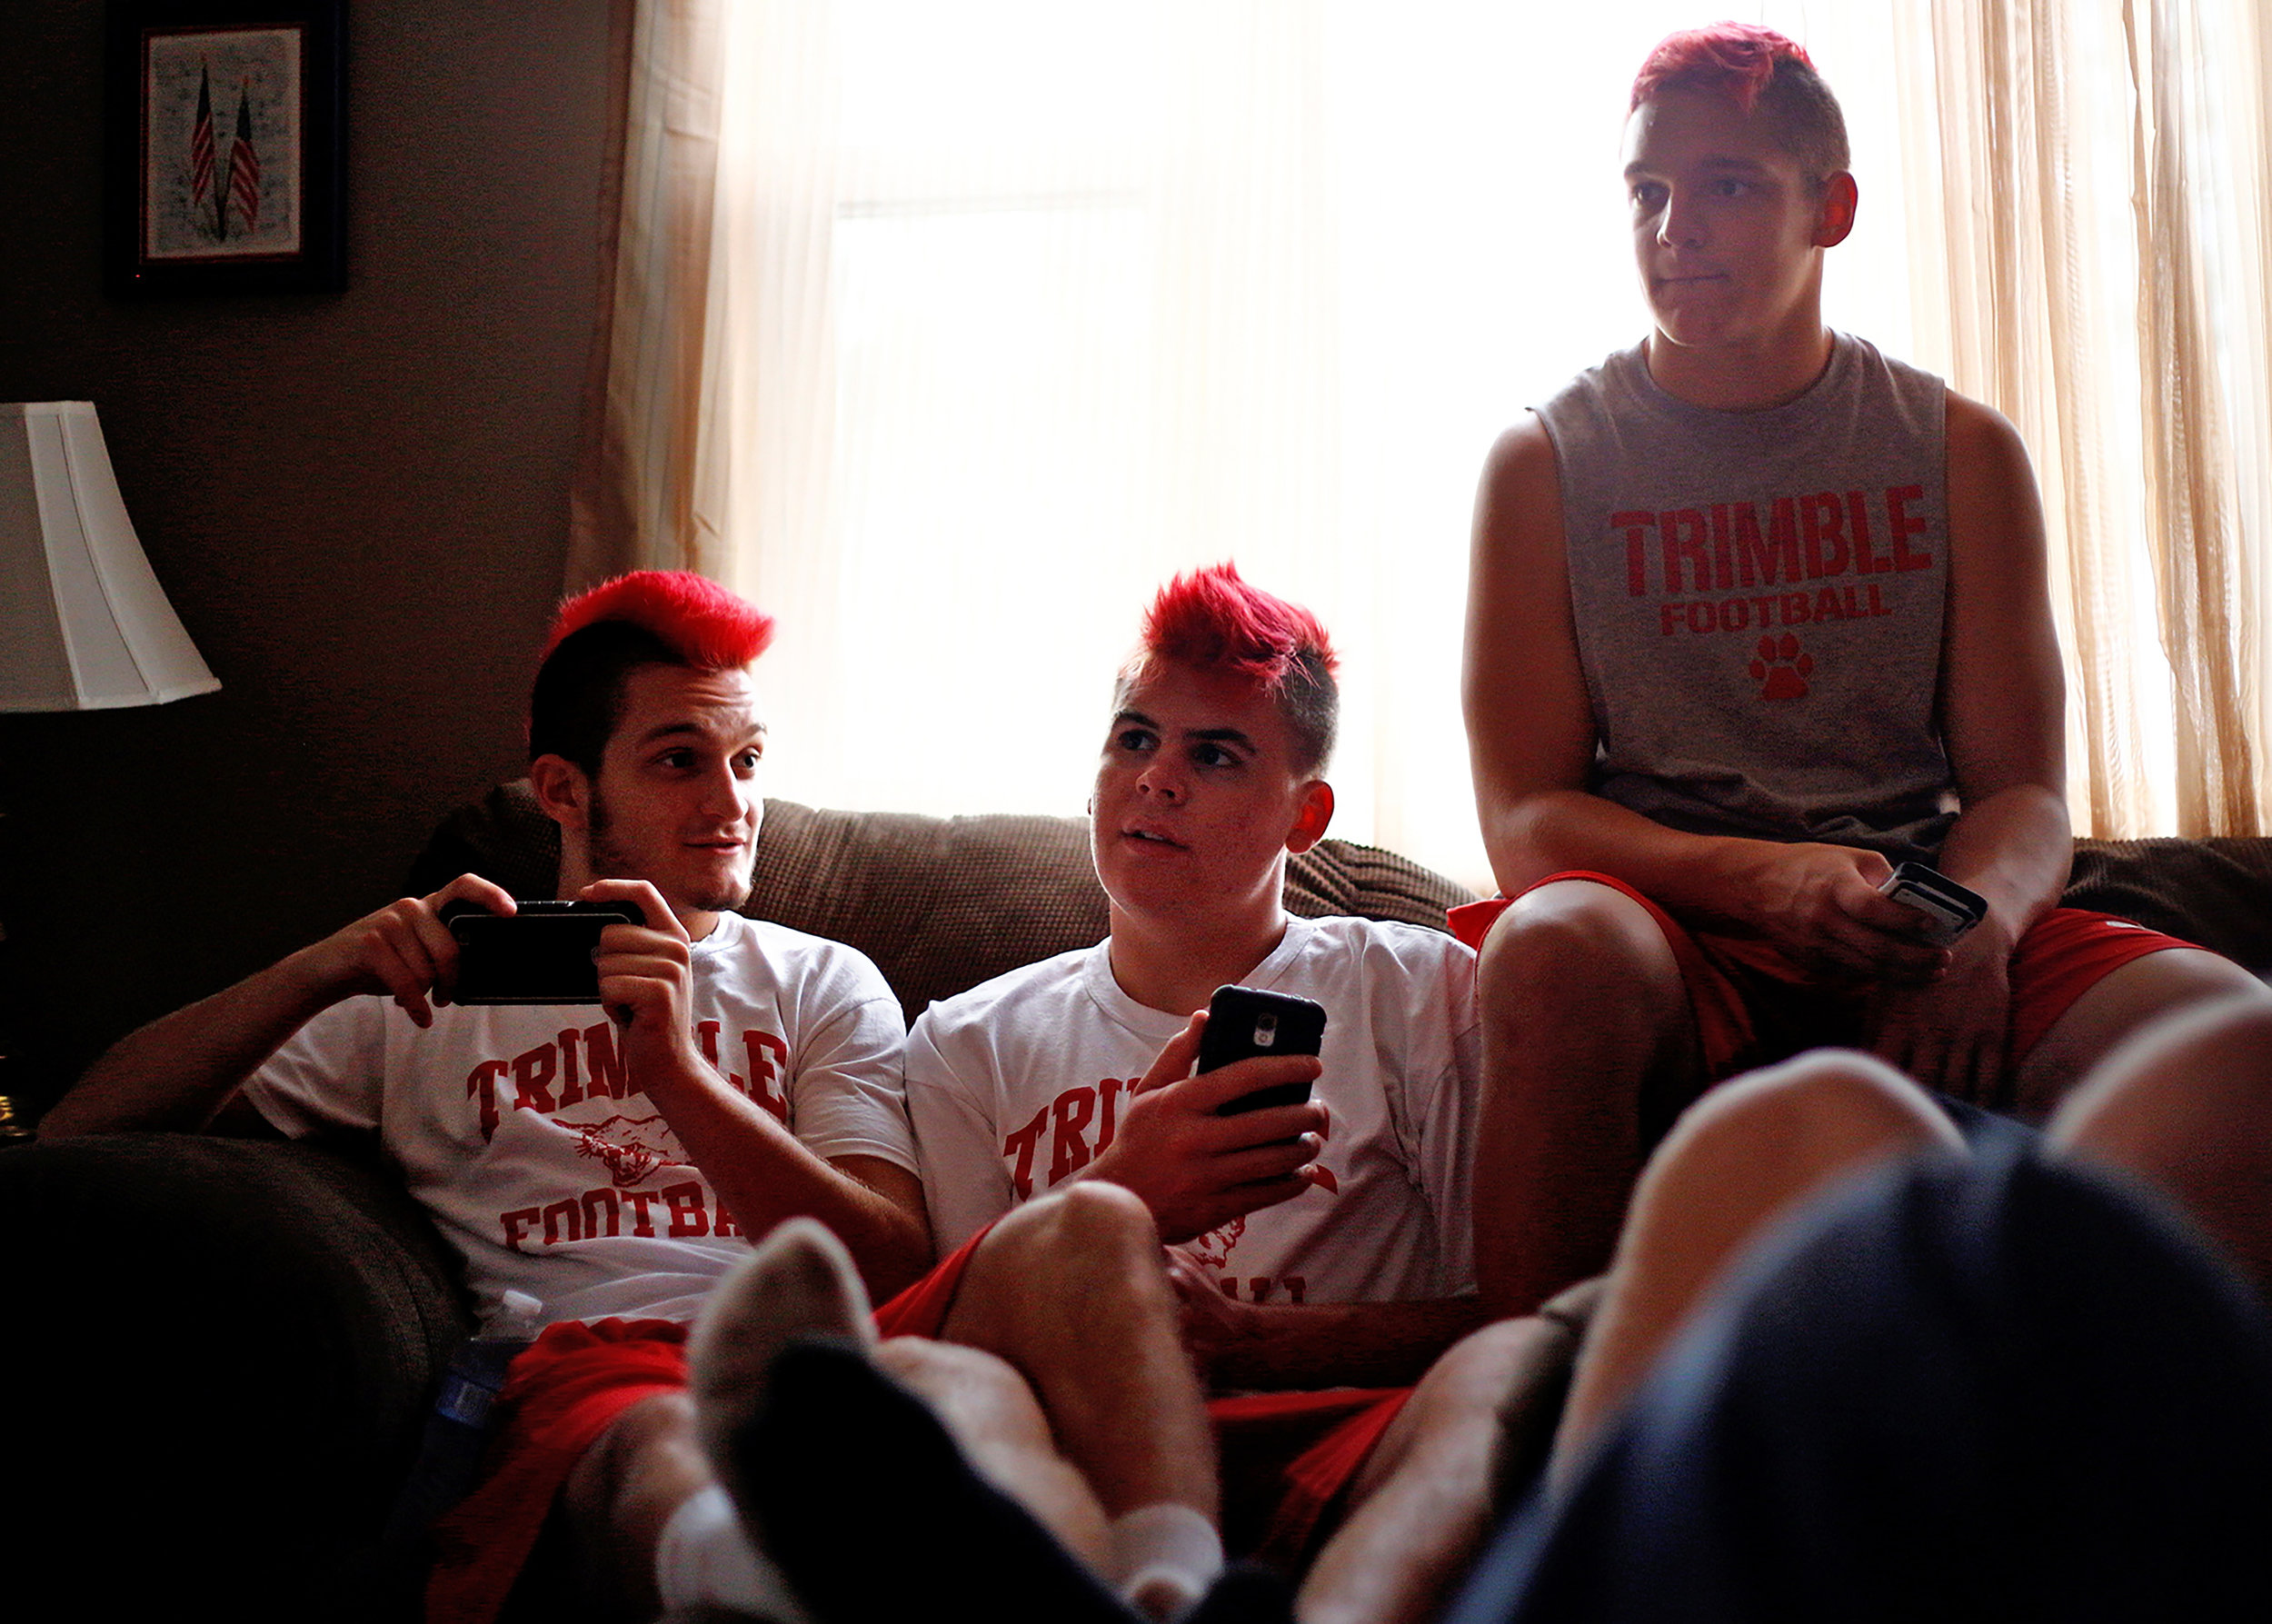 Austin Downs, Micah Couch and another teammate hang out at home after Trimble High School football practice in October 2014.